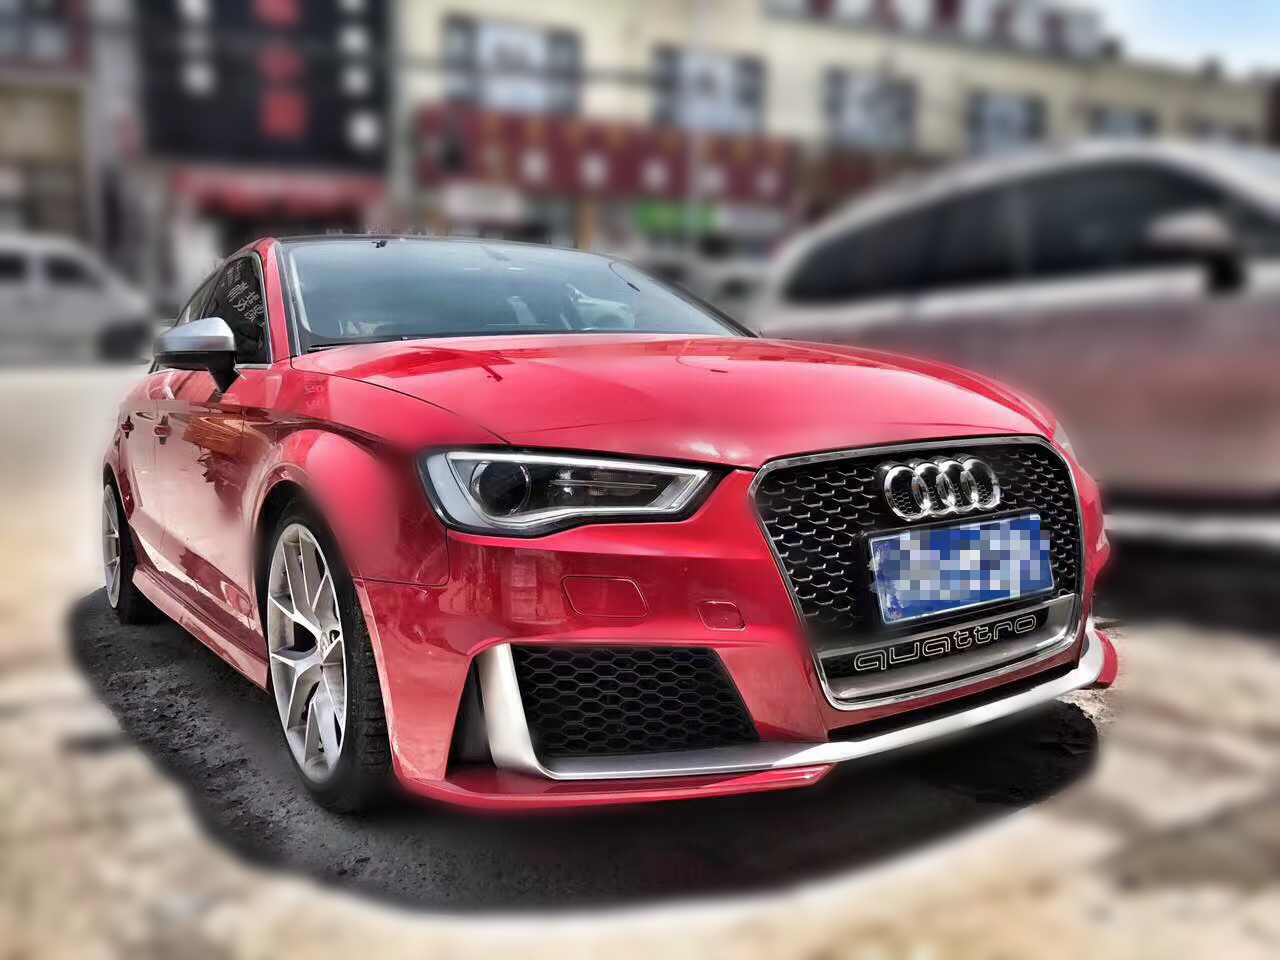 audi 2014 2016 a3 s3 to rs3 front rear bumper conversion. Black Bedroom Furniture Sets. Home Design Ideas